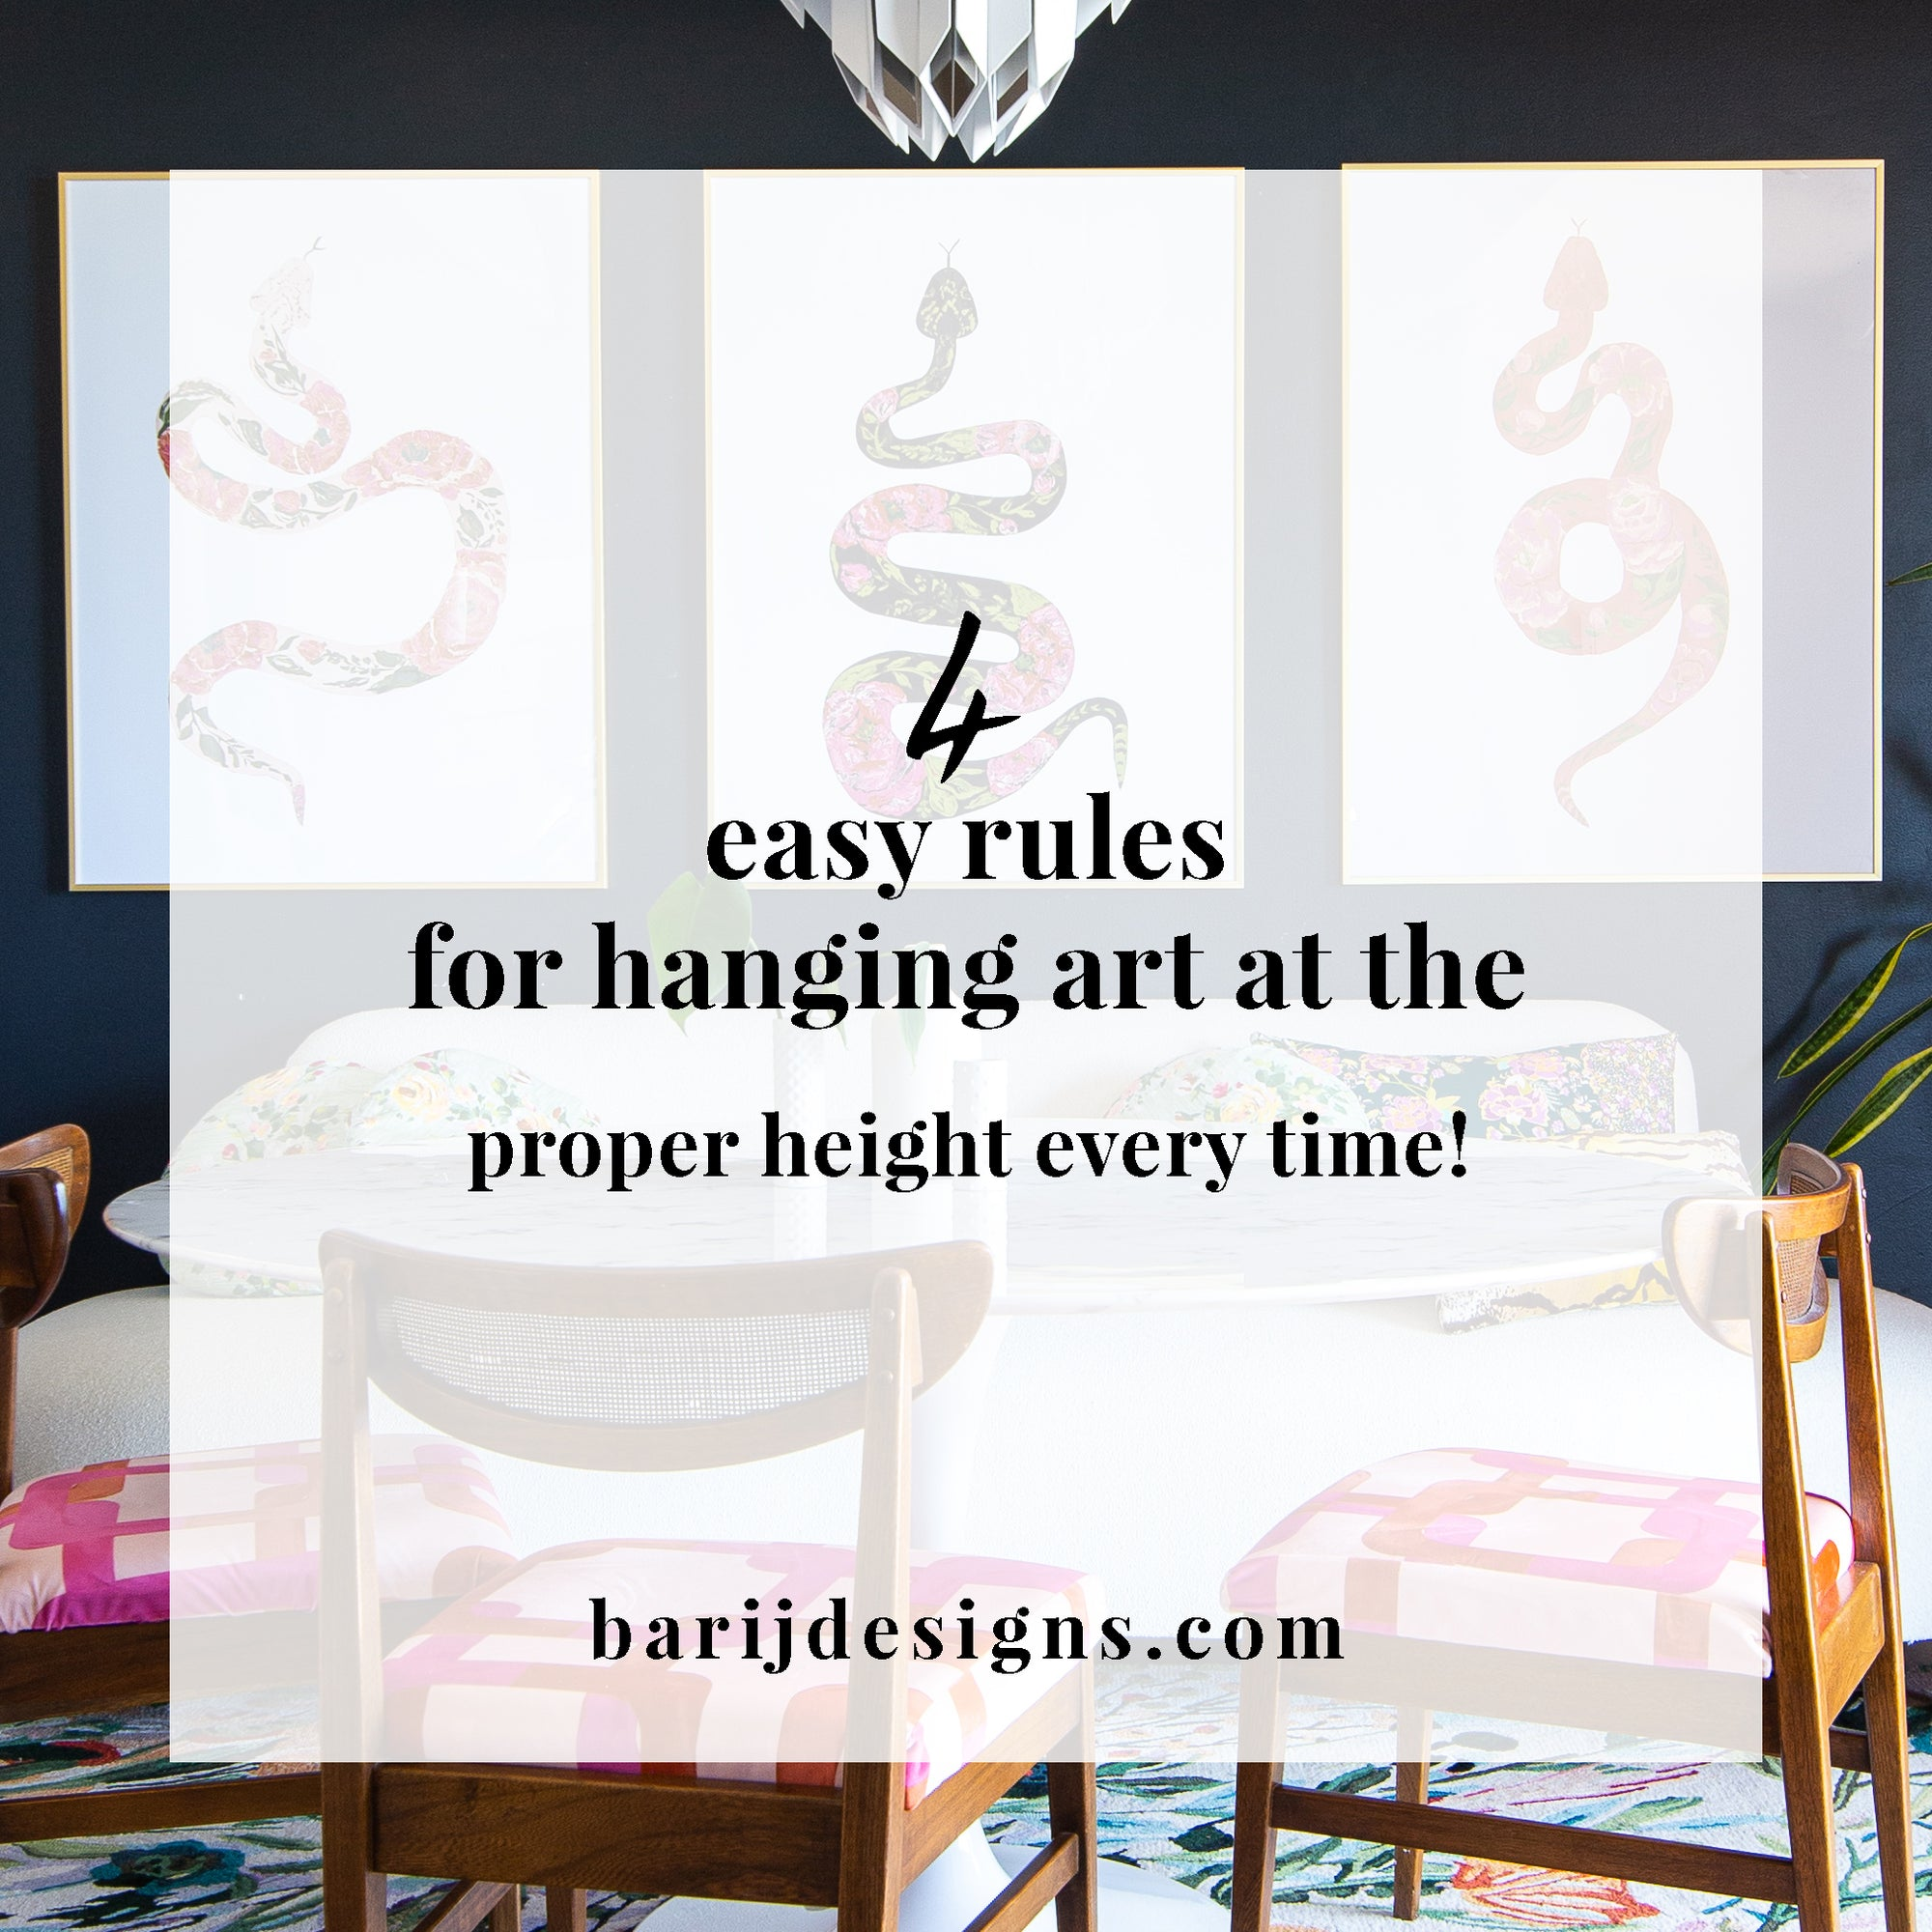 Four Rules for Hanging Art at the Proper Height Every Time!